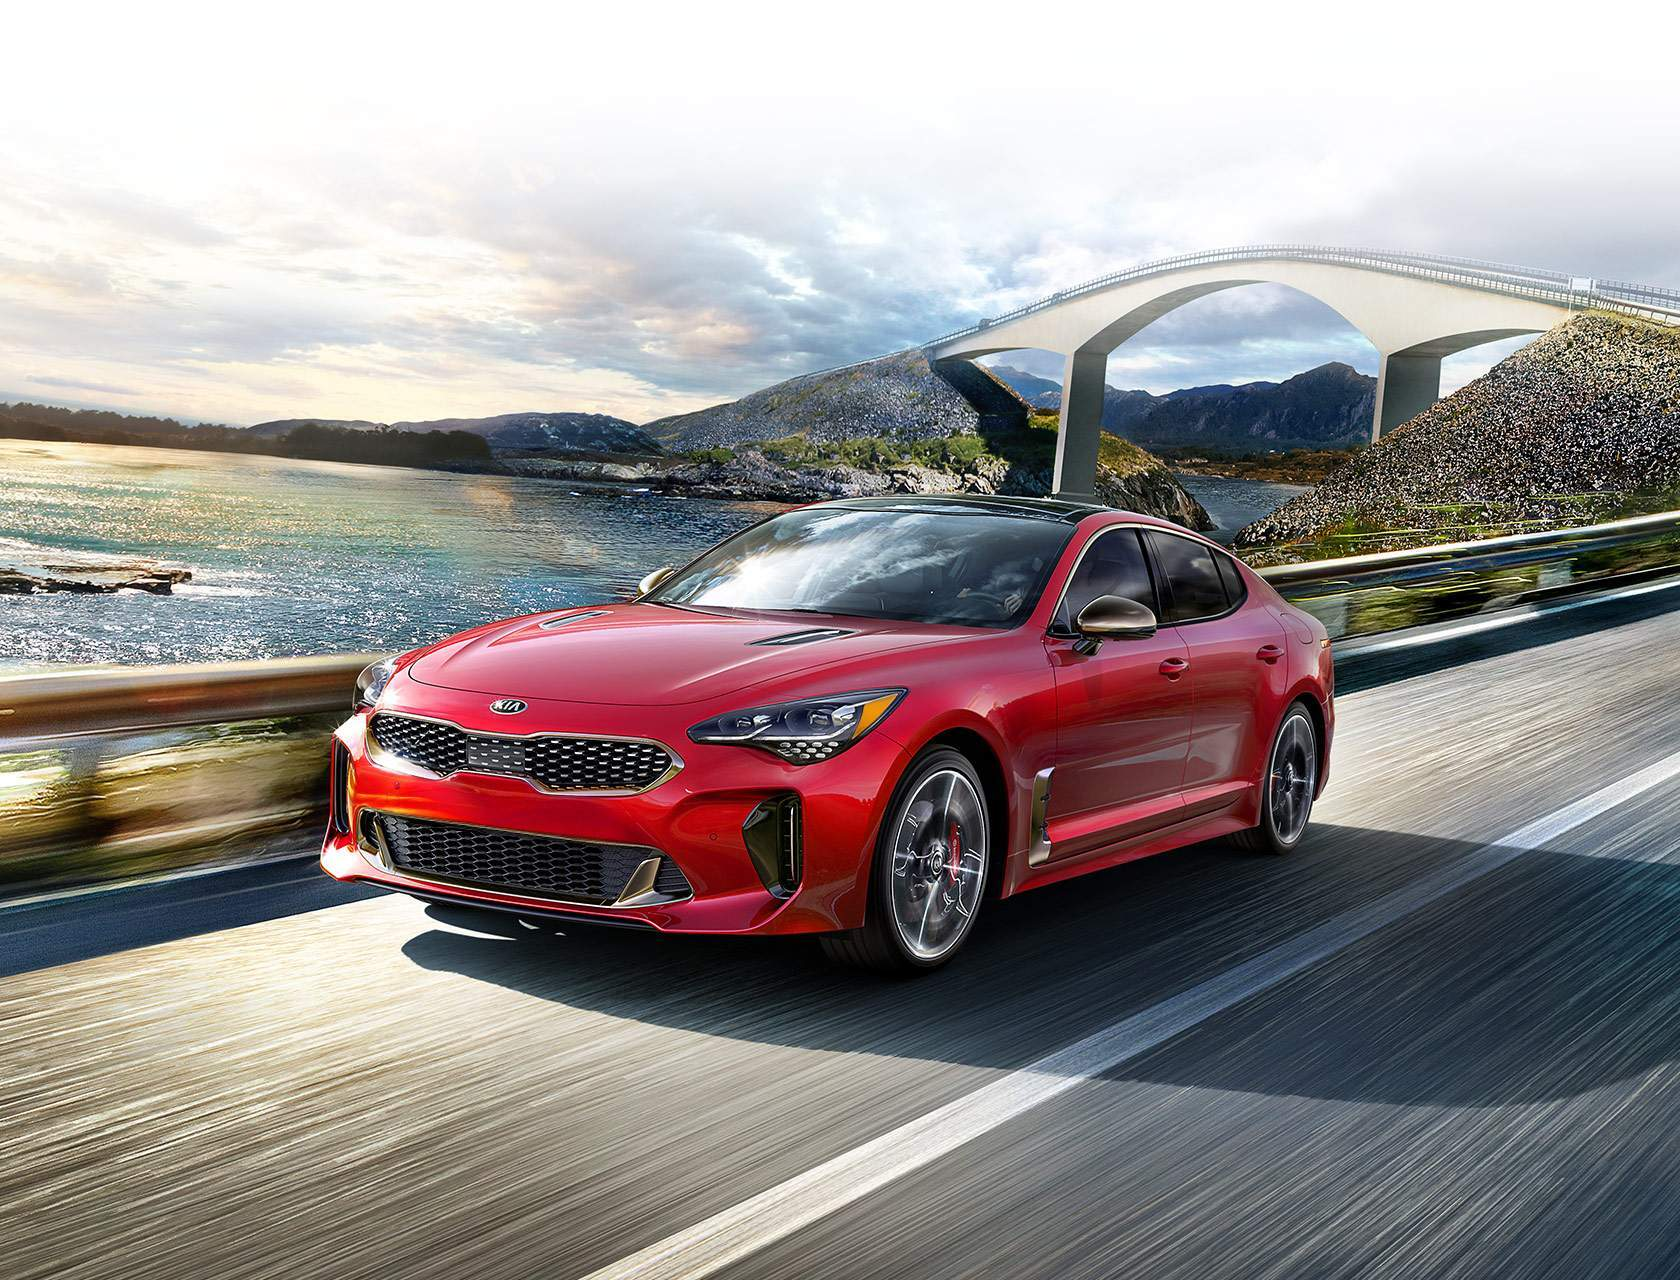 2018 Kia Stinger in Northport, FL